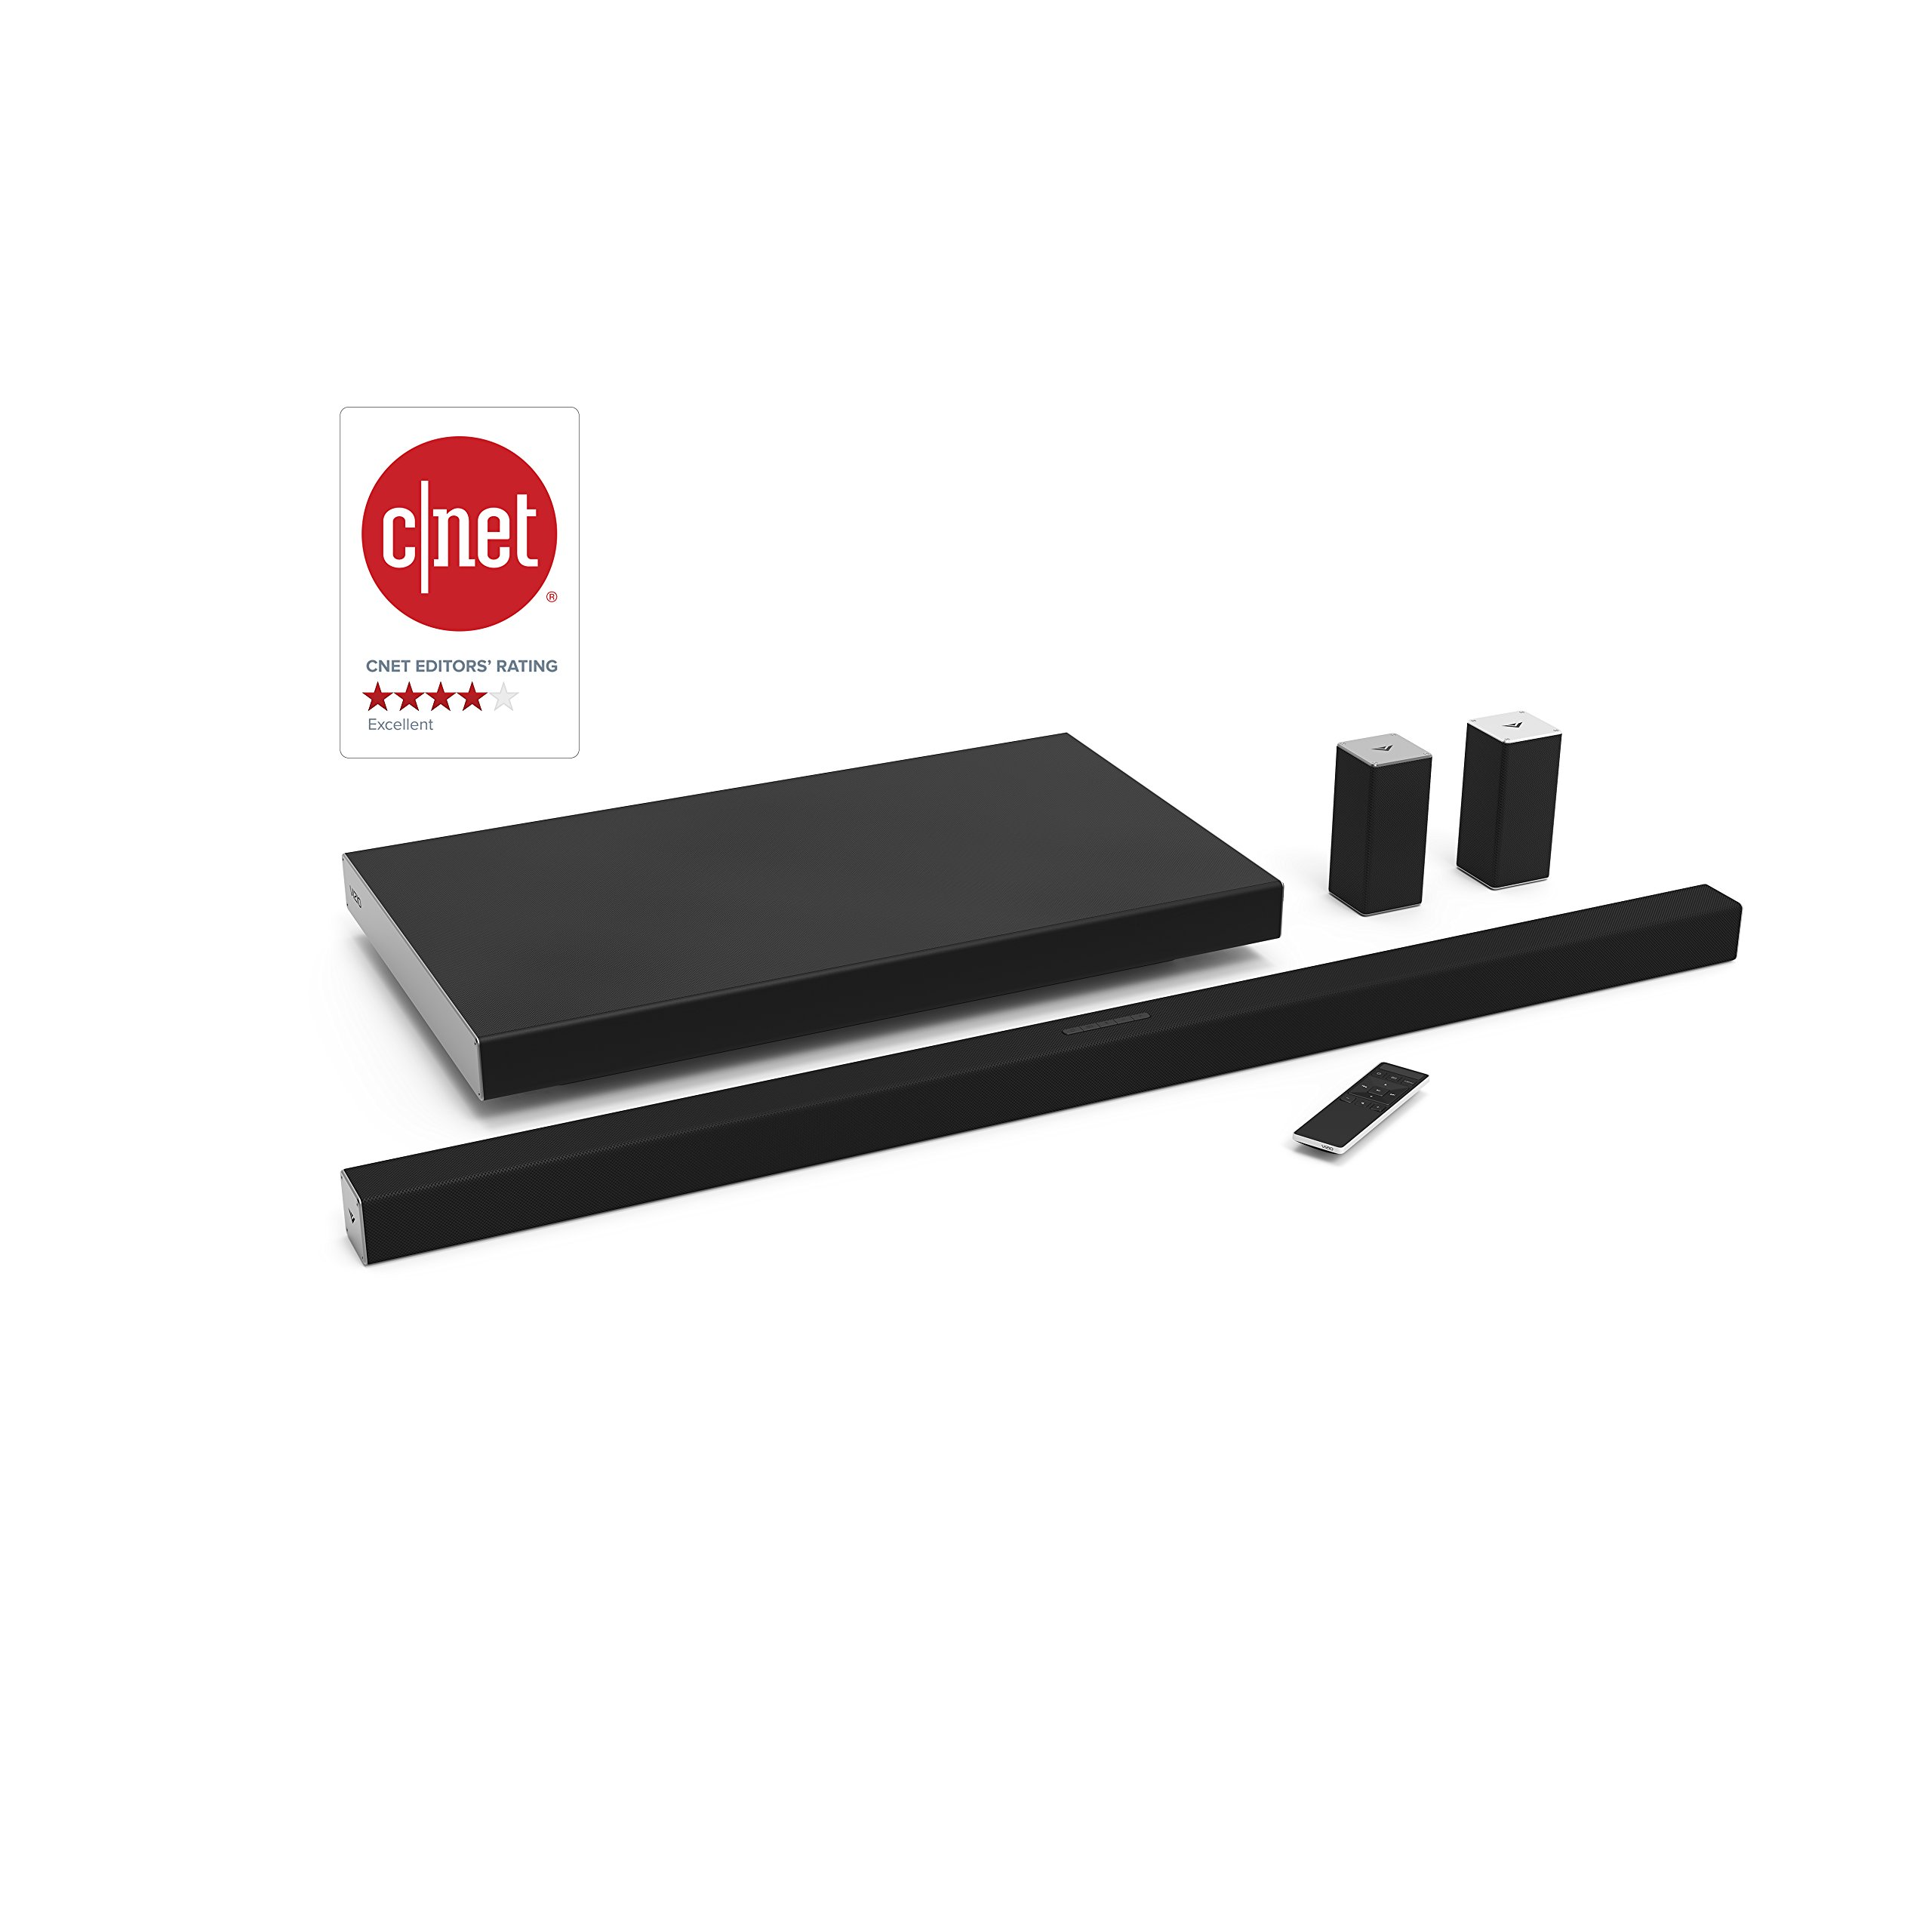 "VIZIO SB4551-D5 Smartcast 45"" 5.1 Slim Sound Bar System by VIZIO"